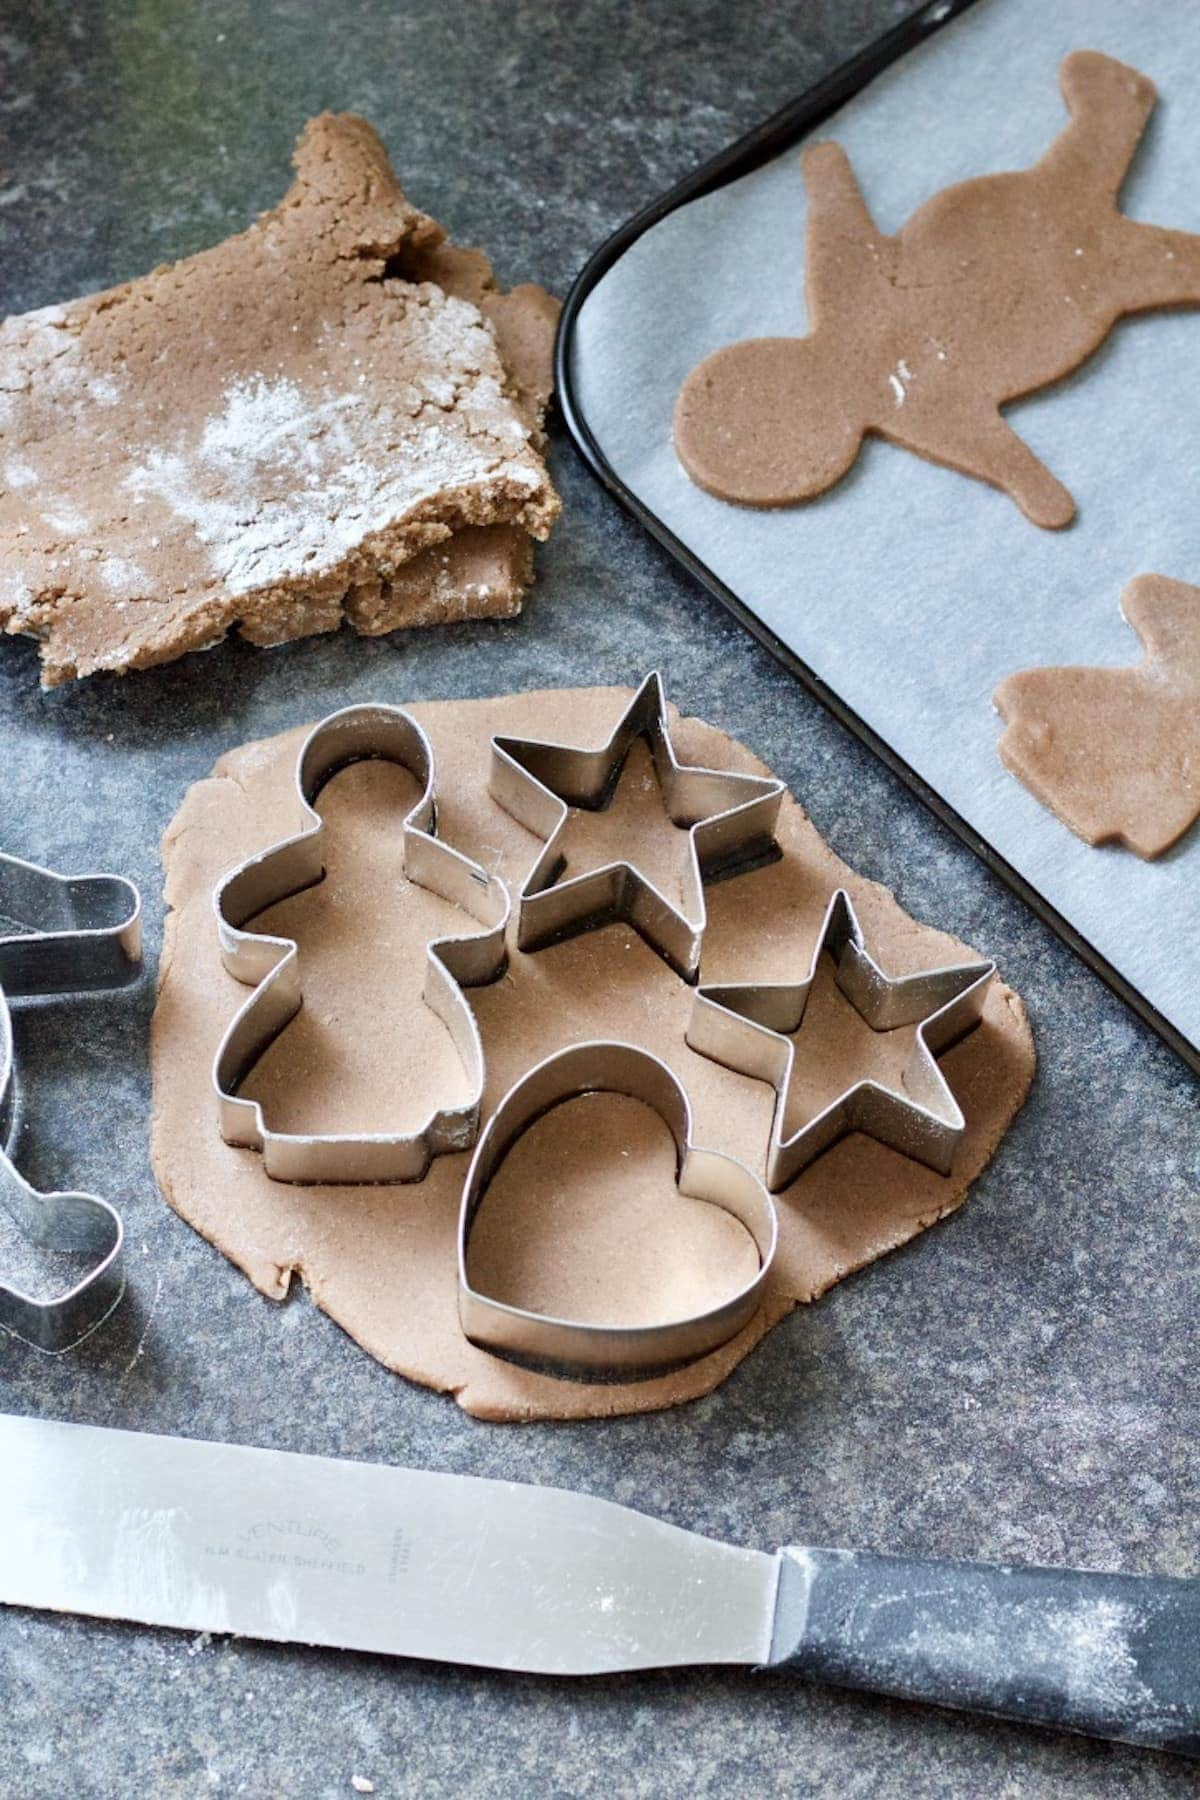 Biscuits being cut out of dough with cutters.